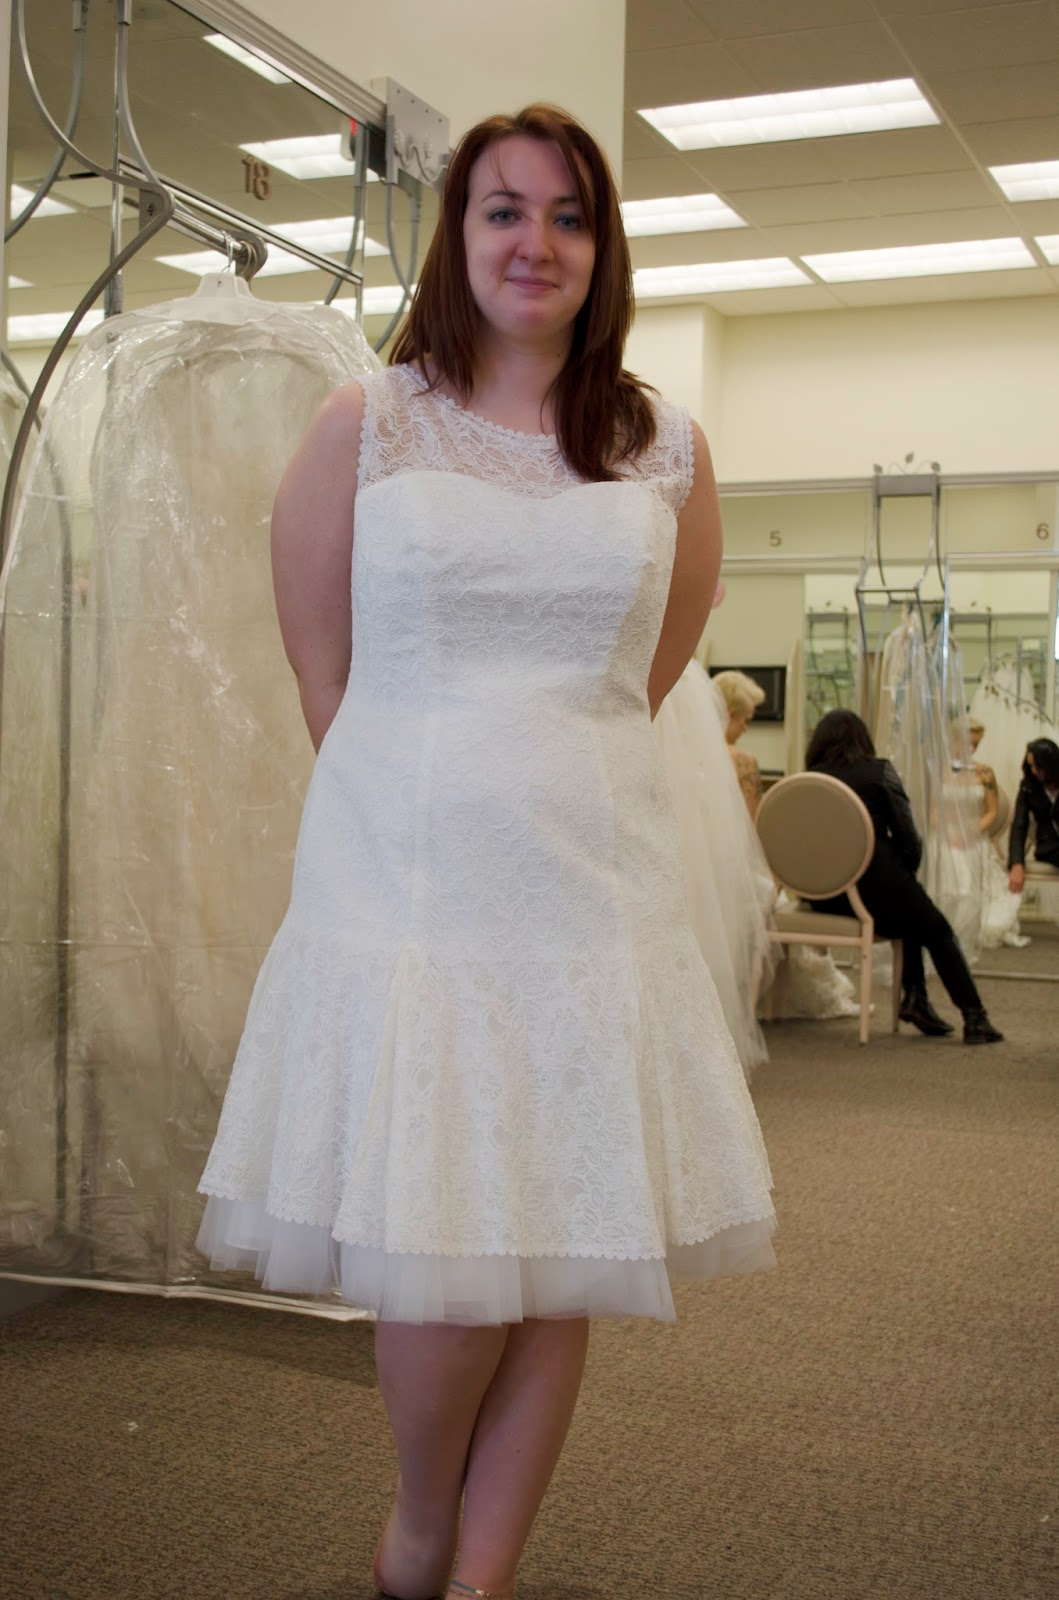 The Dress Shopping Adventure!